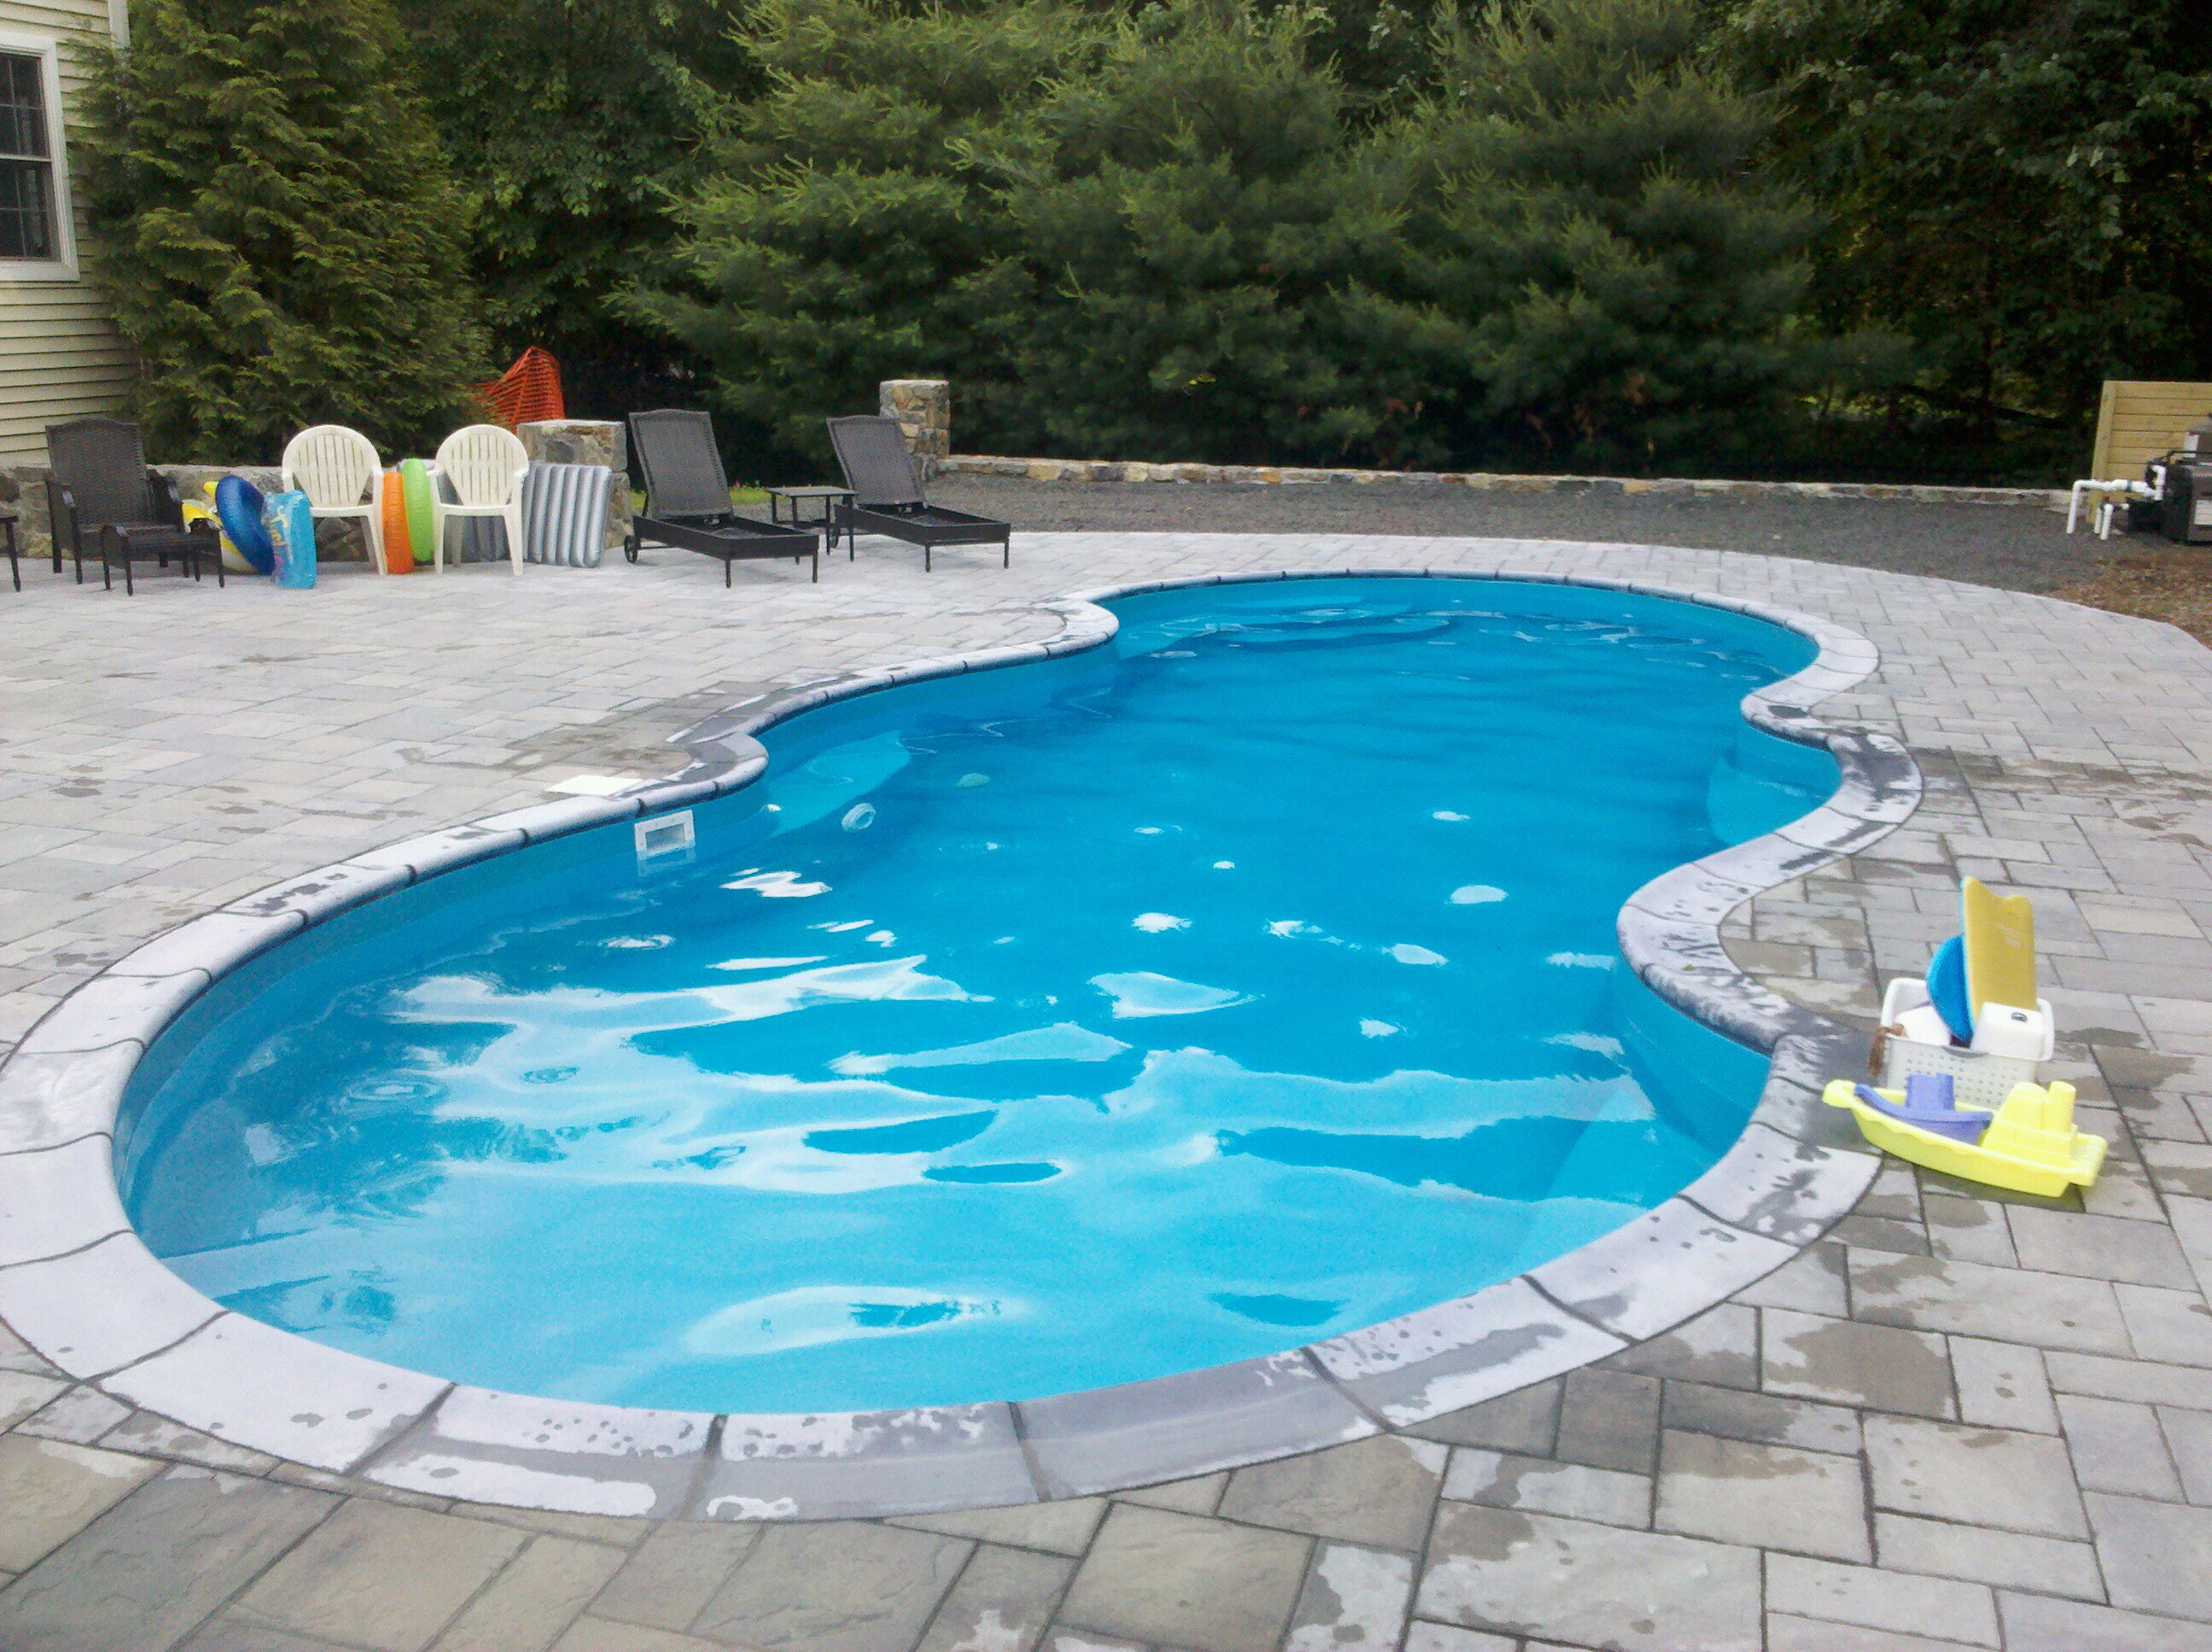 Preferred properties installs this oasis shaped fiberglass for Pictures of a pool